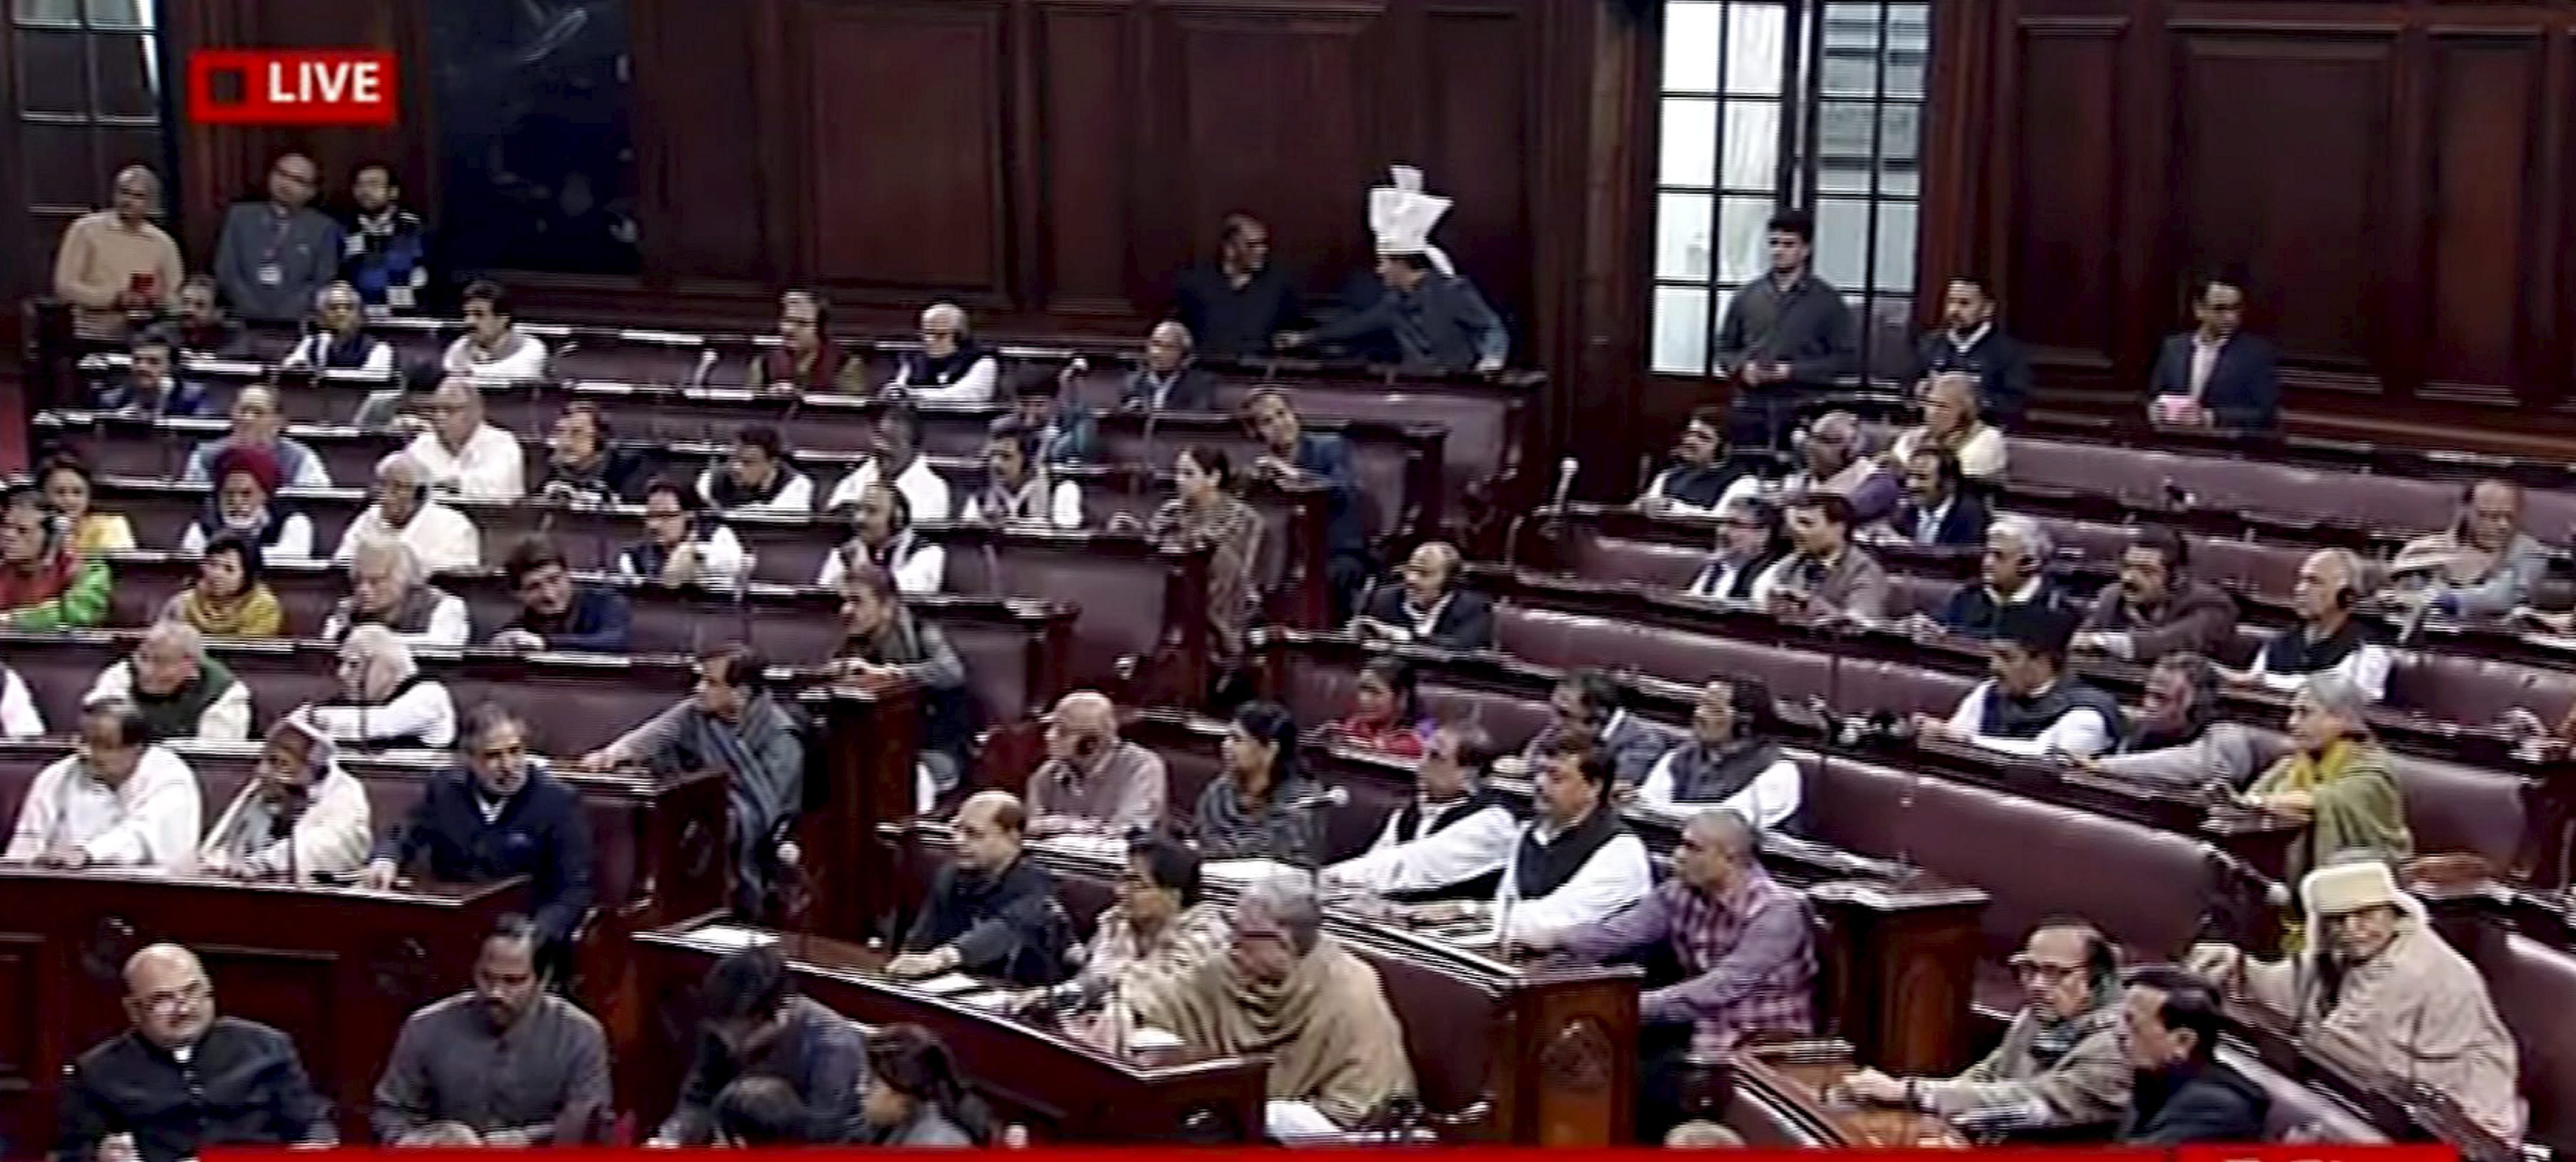 The Rajya Sabha during the voting on the bill to provide 10 per cent reservation in jobs and educational institutions to economically backward sections in the general category in New Delhi, Wednesday, January 9, 2019